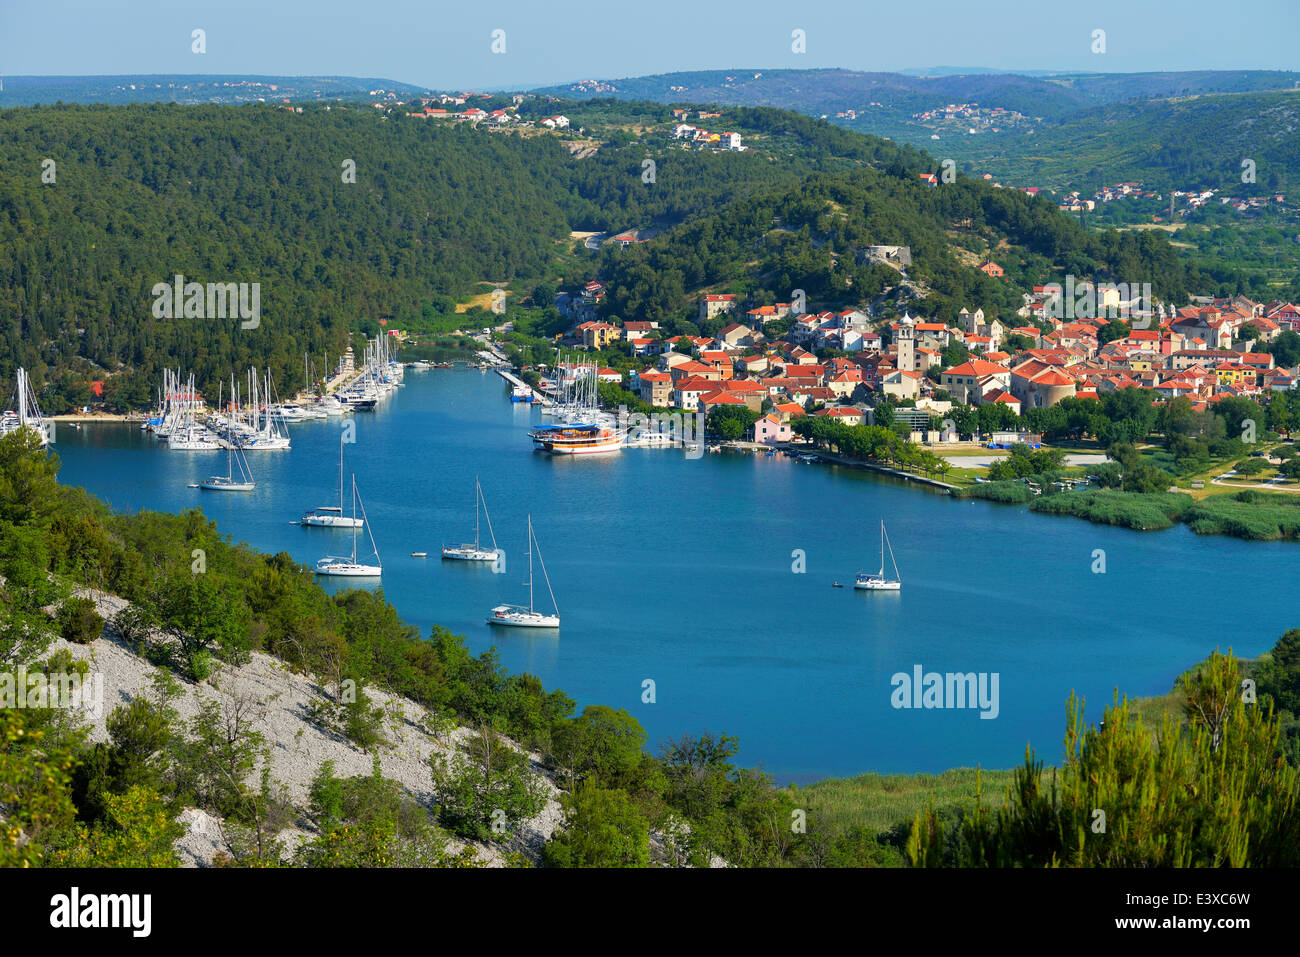 Townscape with sailing ships in the foreground, River Krka, Skradin, Dalmatia, Croatia - Stock Image